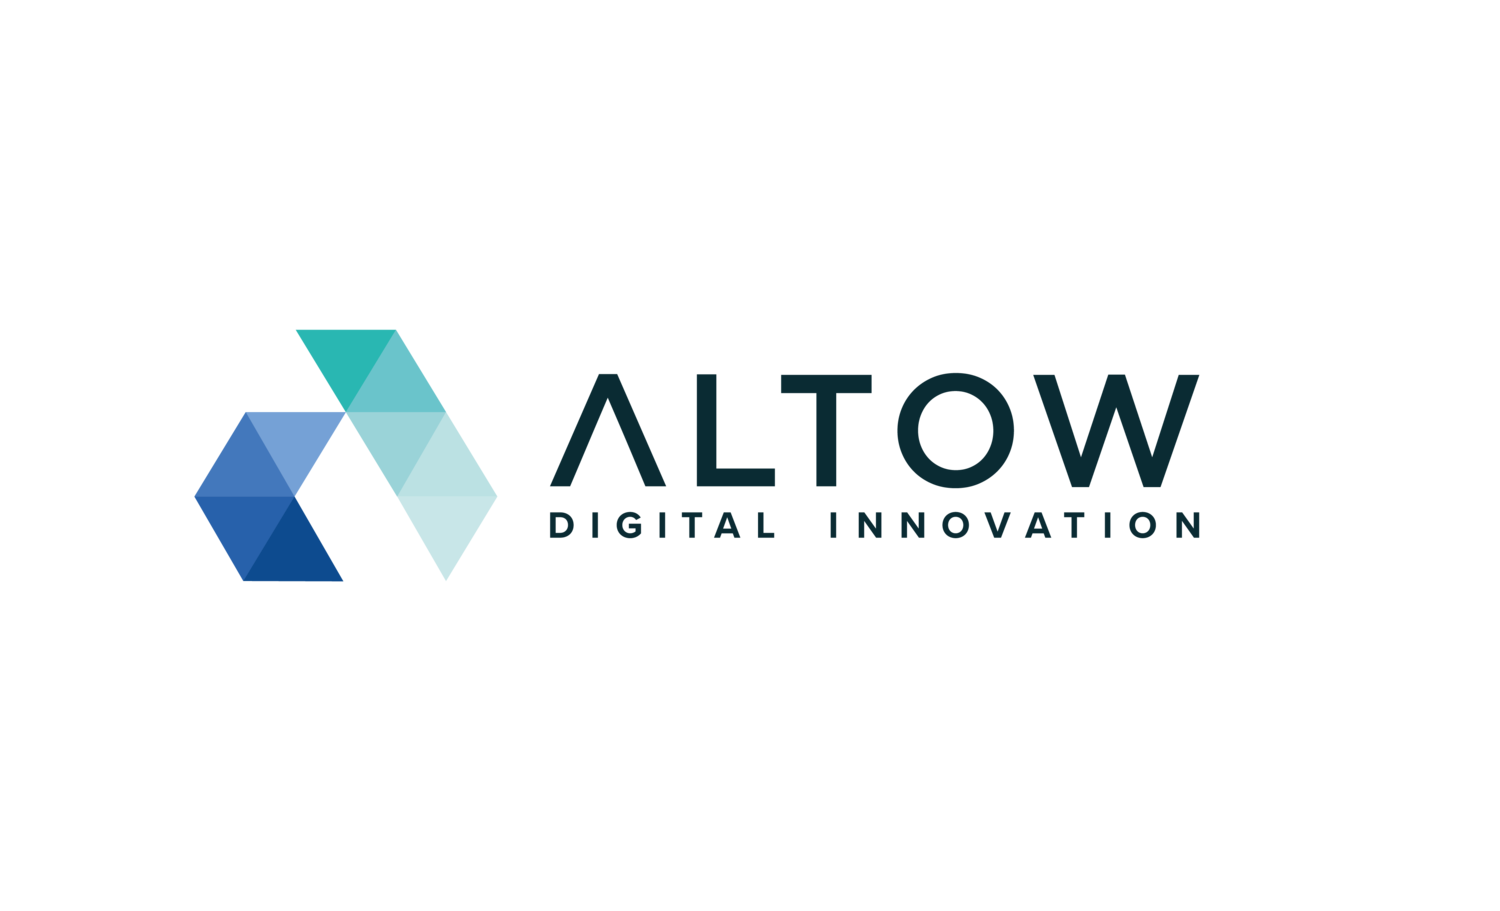 Altow Digital Innovation